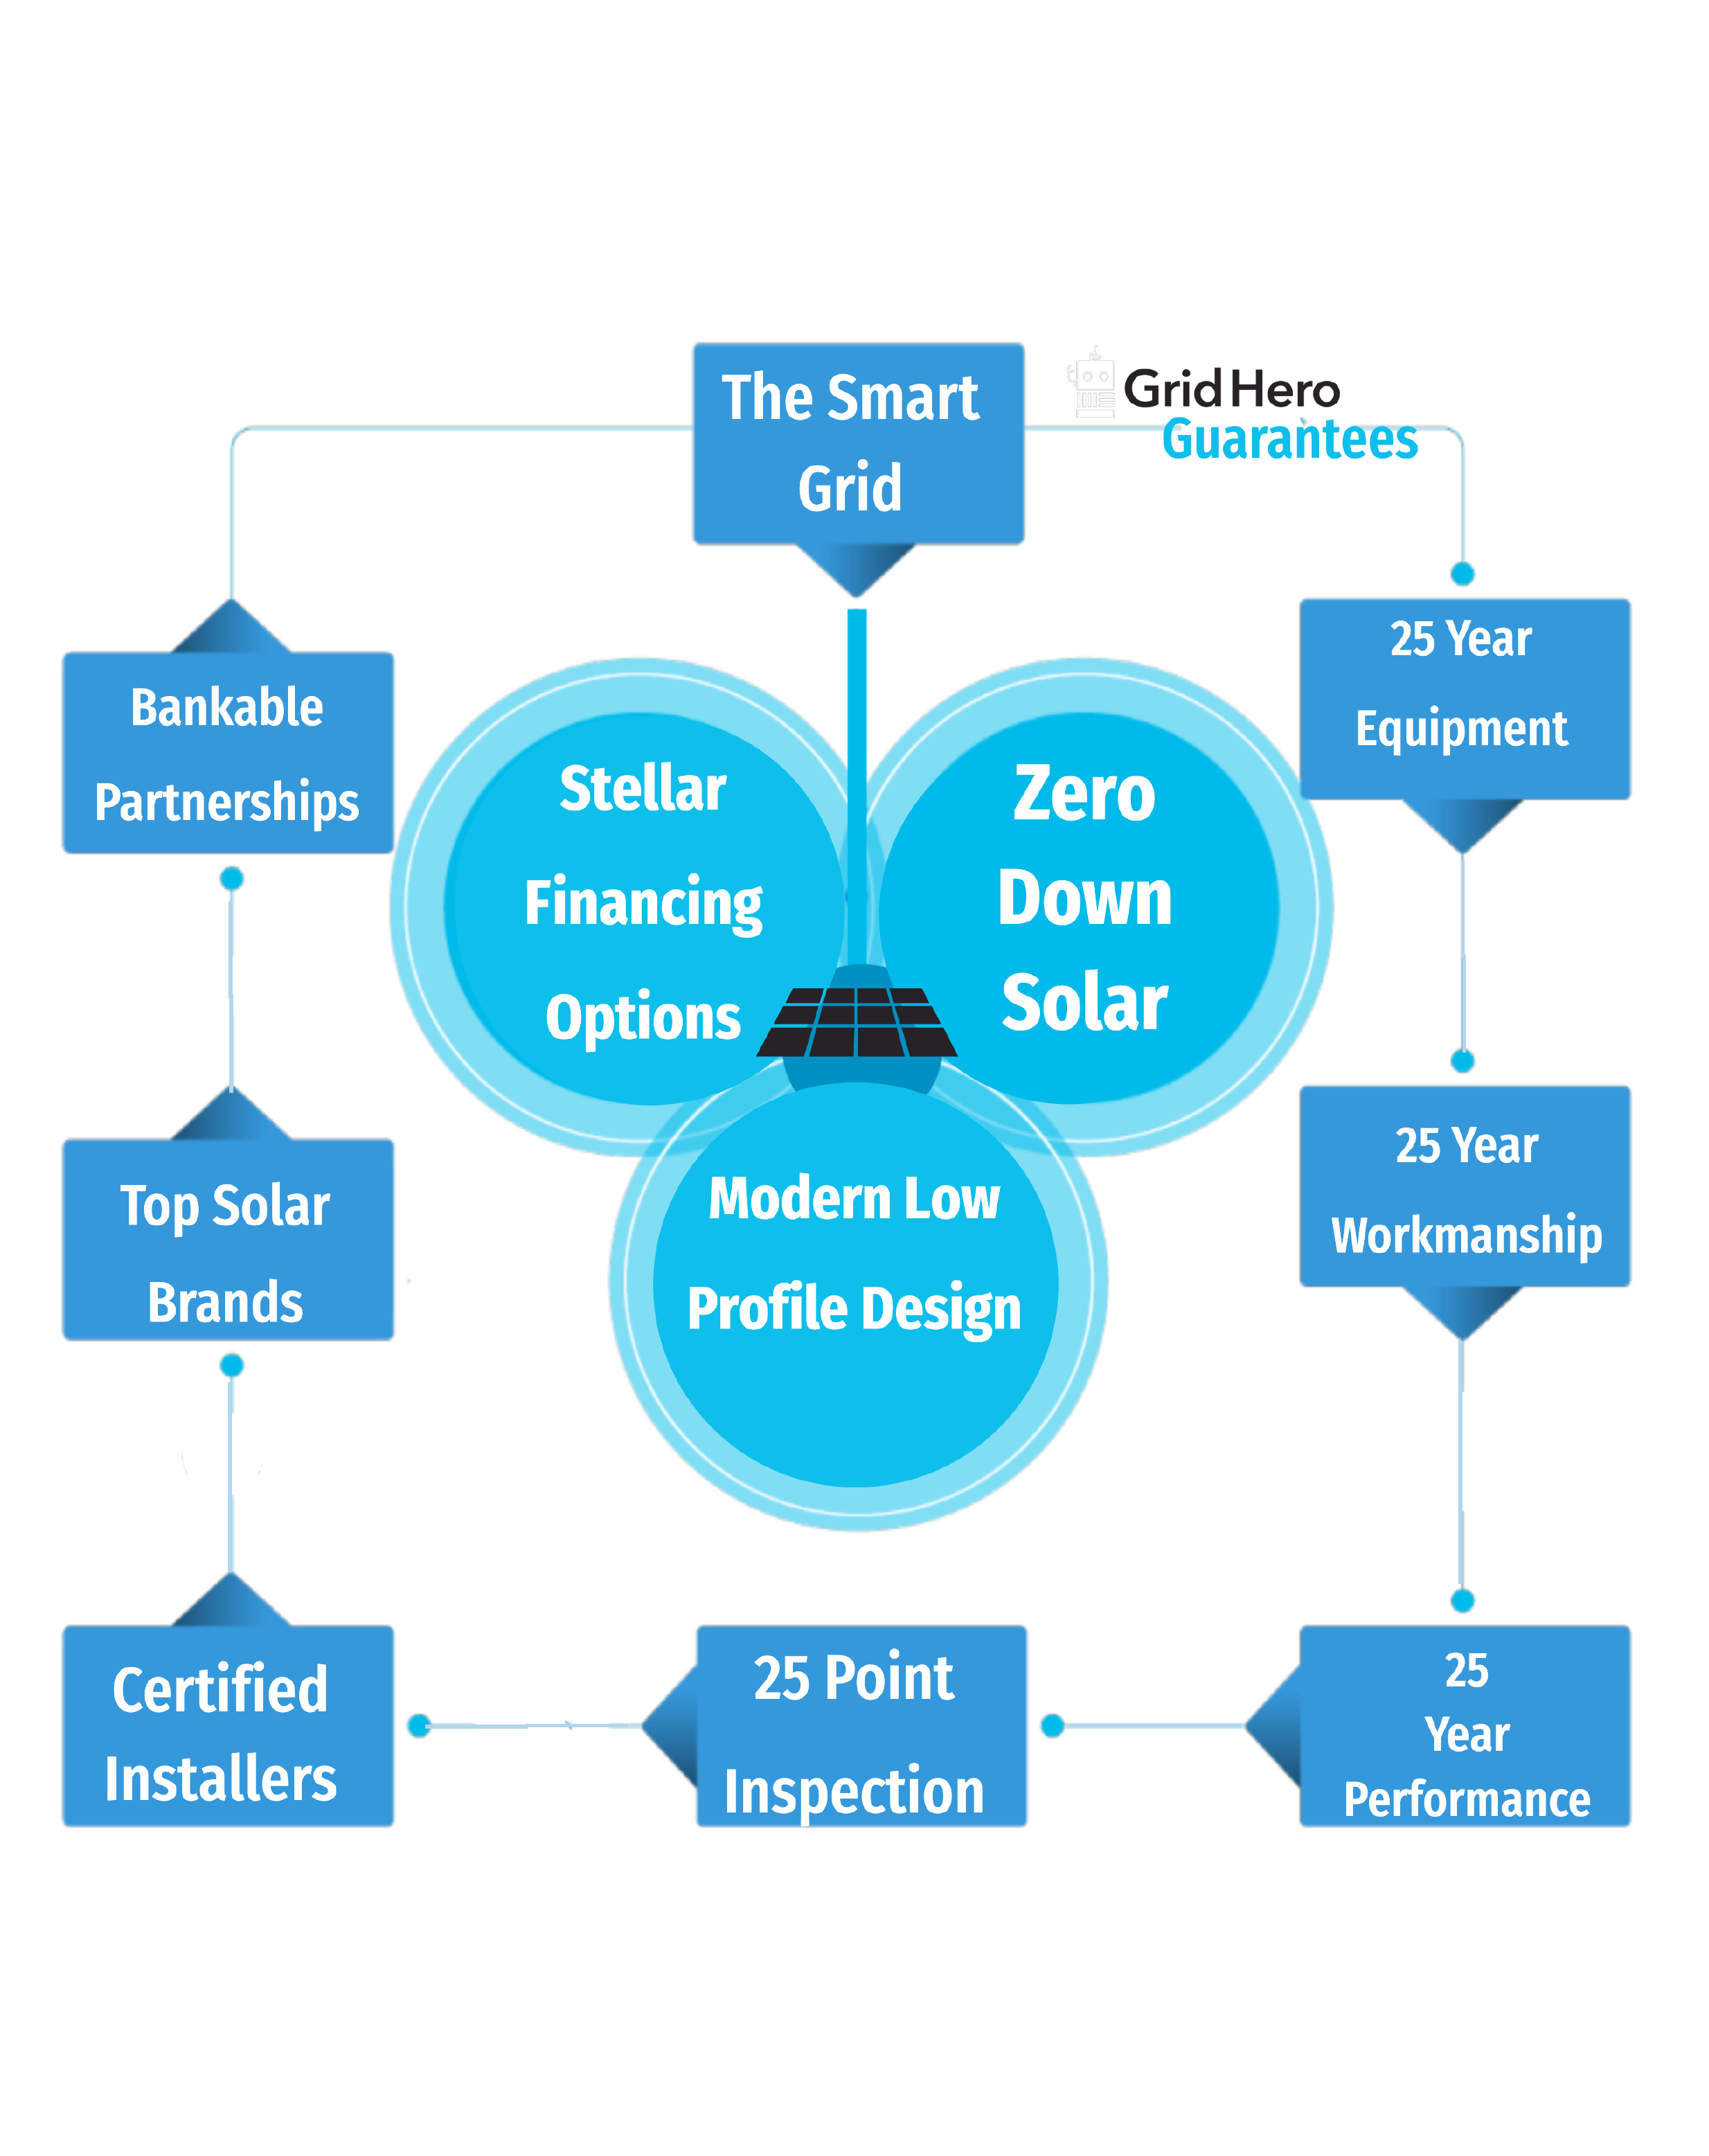 Solars Smart Grid By Grid Hero